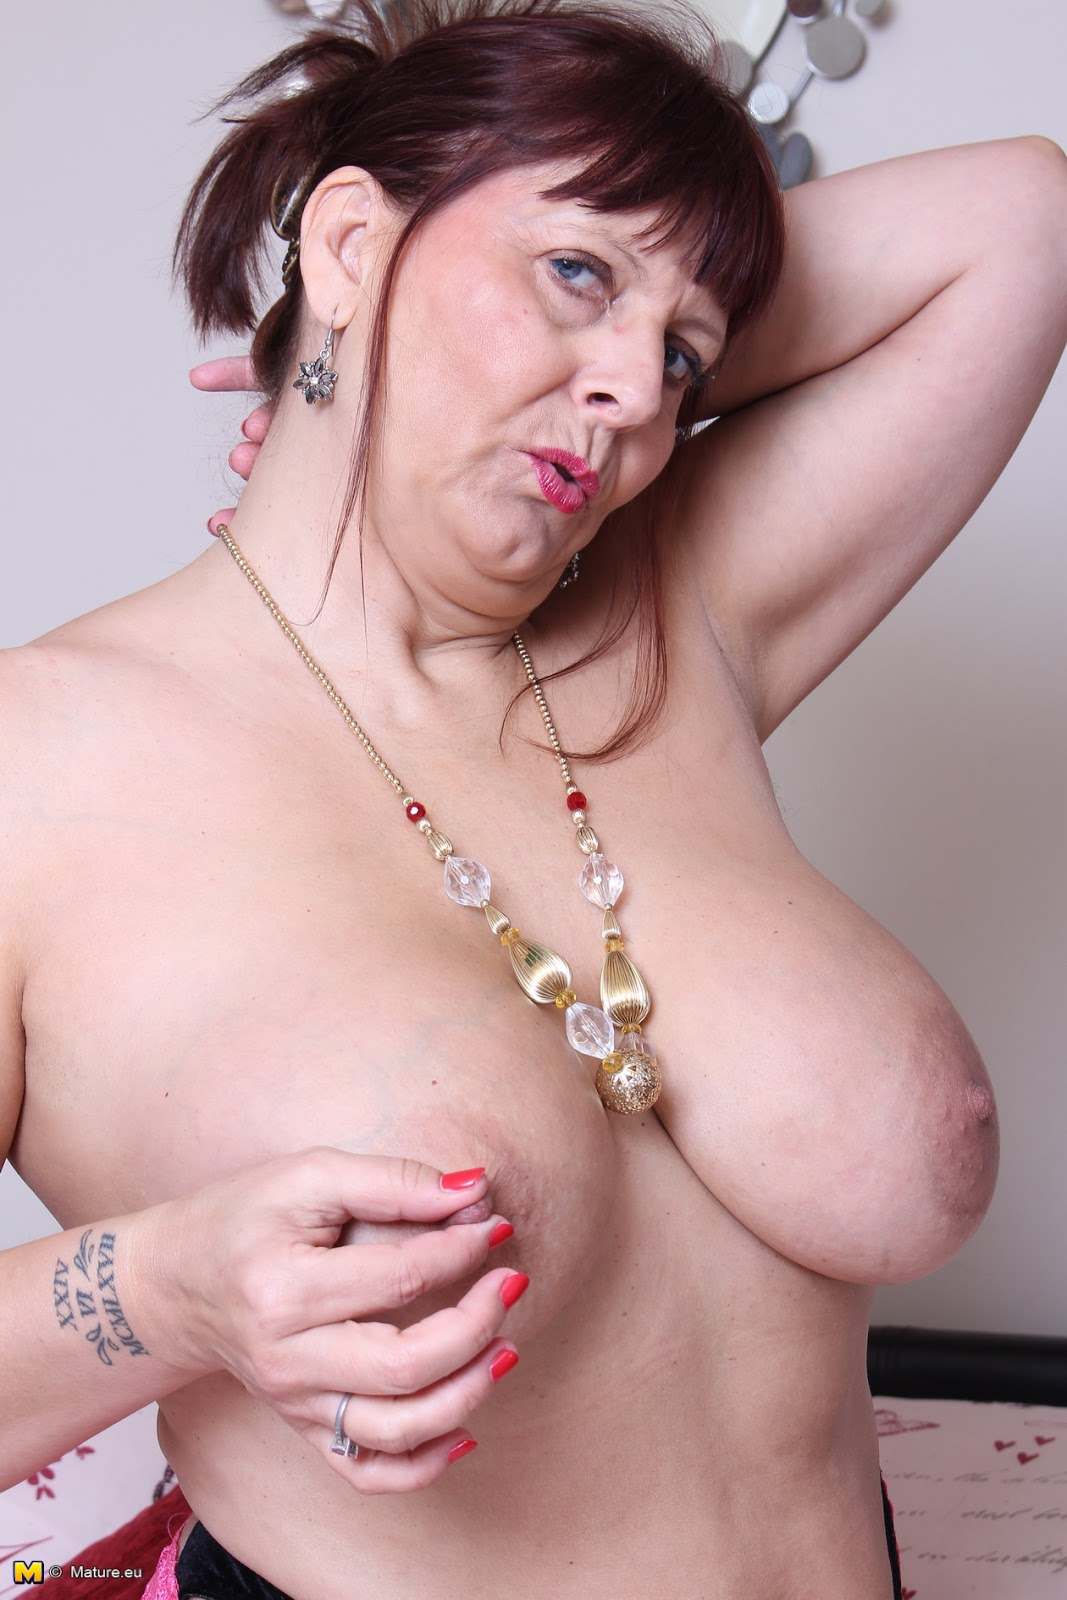 archive of old women .com: Alexa UK Big Breasted Mature